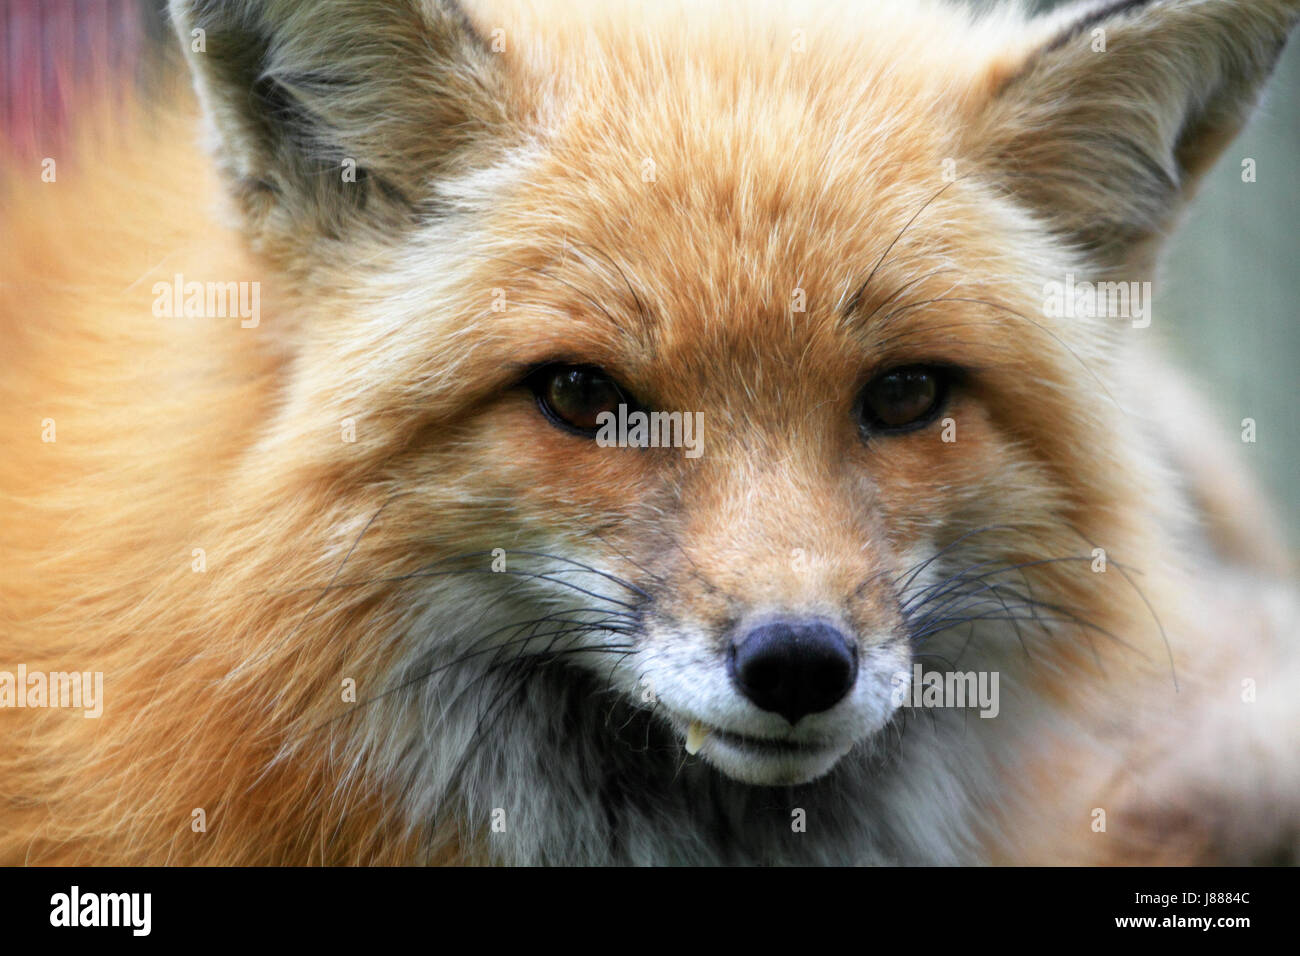 Red Fox, Vulpes vulpes, closeup - Stock Image